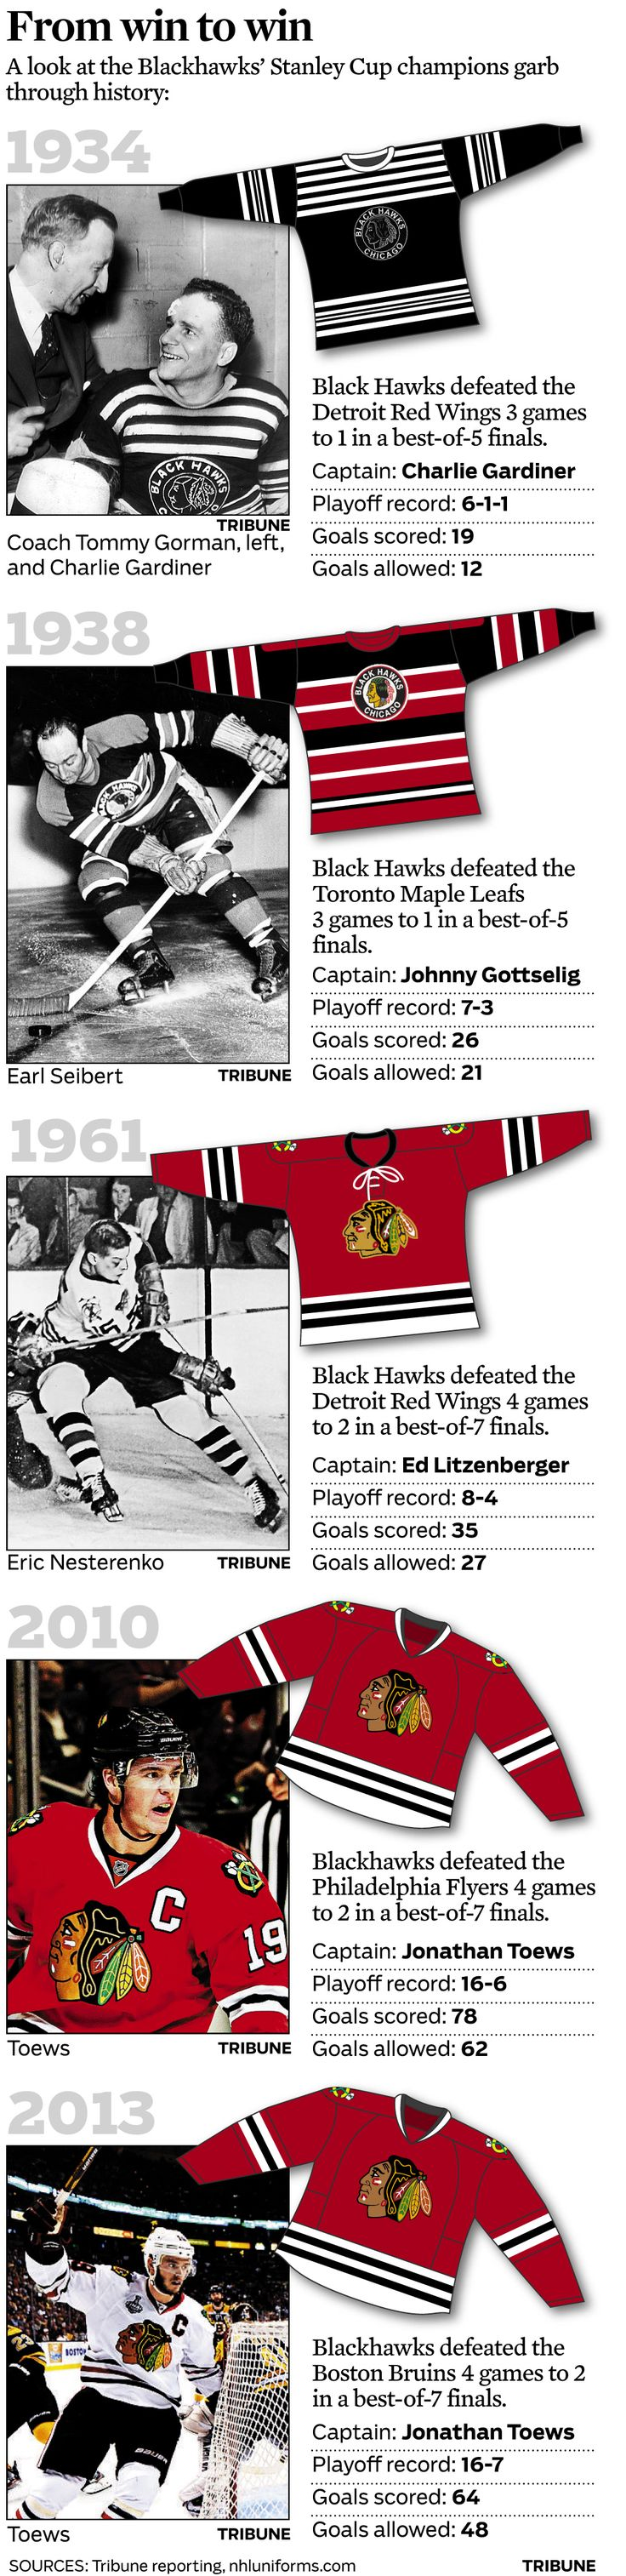 Chicago Blackhawks Stanley Cup uniforms through the years (June 26, 2013)